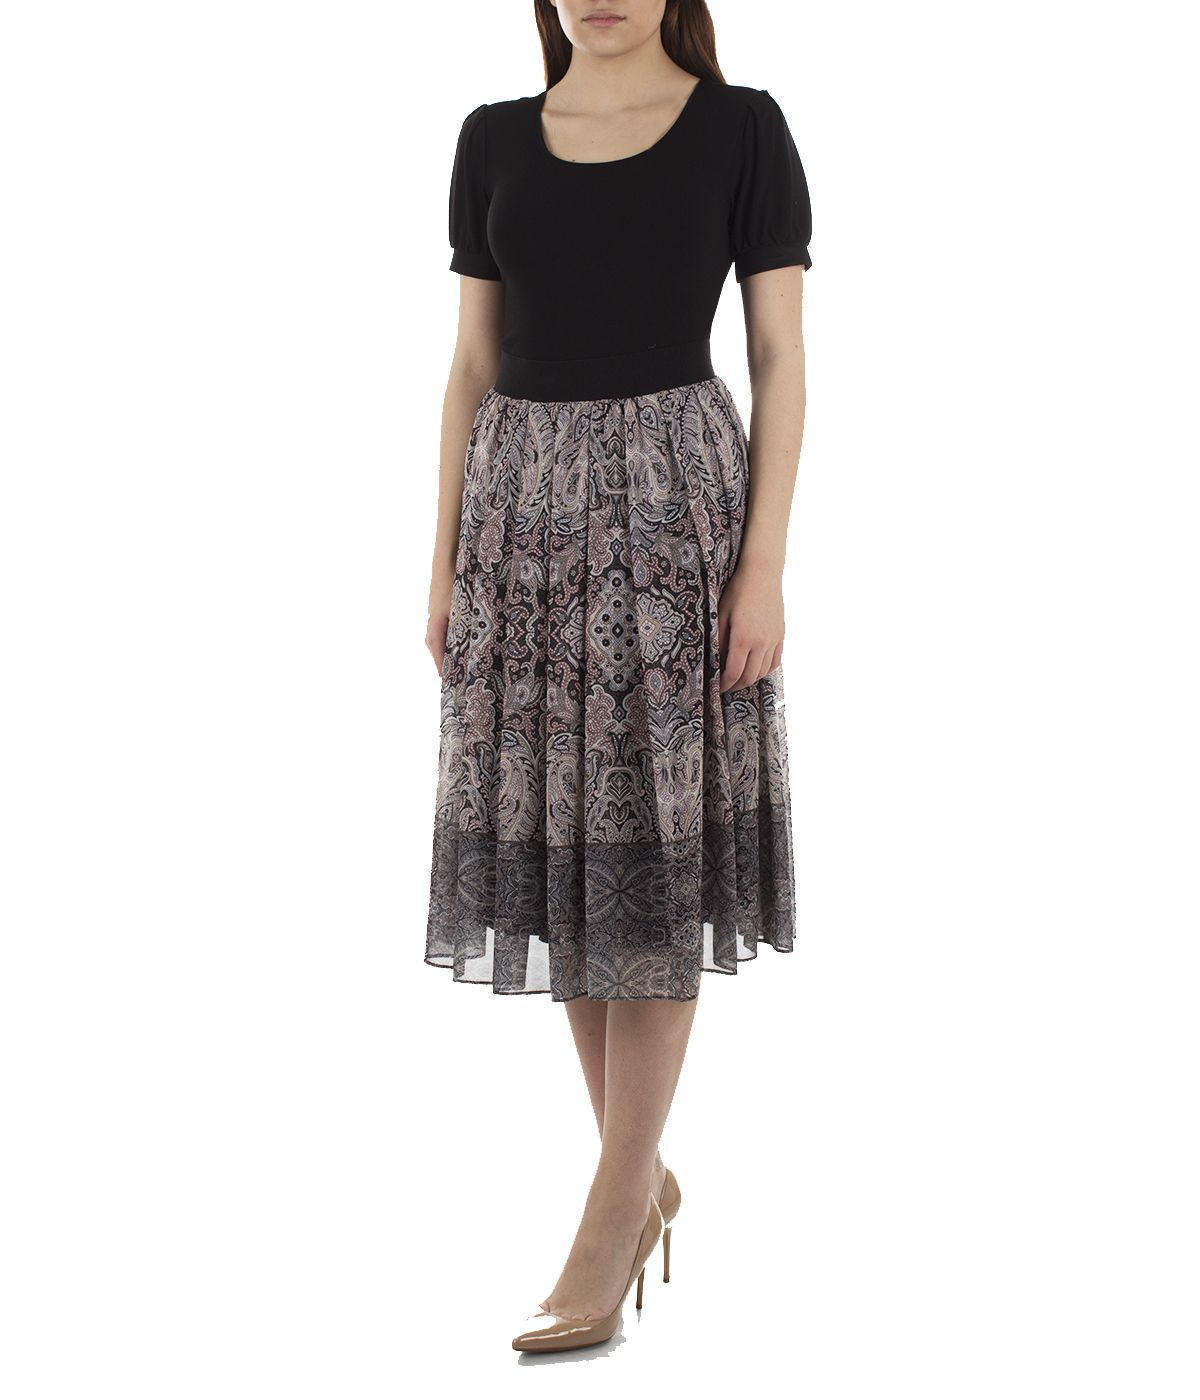 Midi skirt with box pleats and paisley print 2